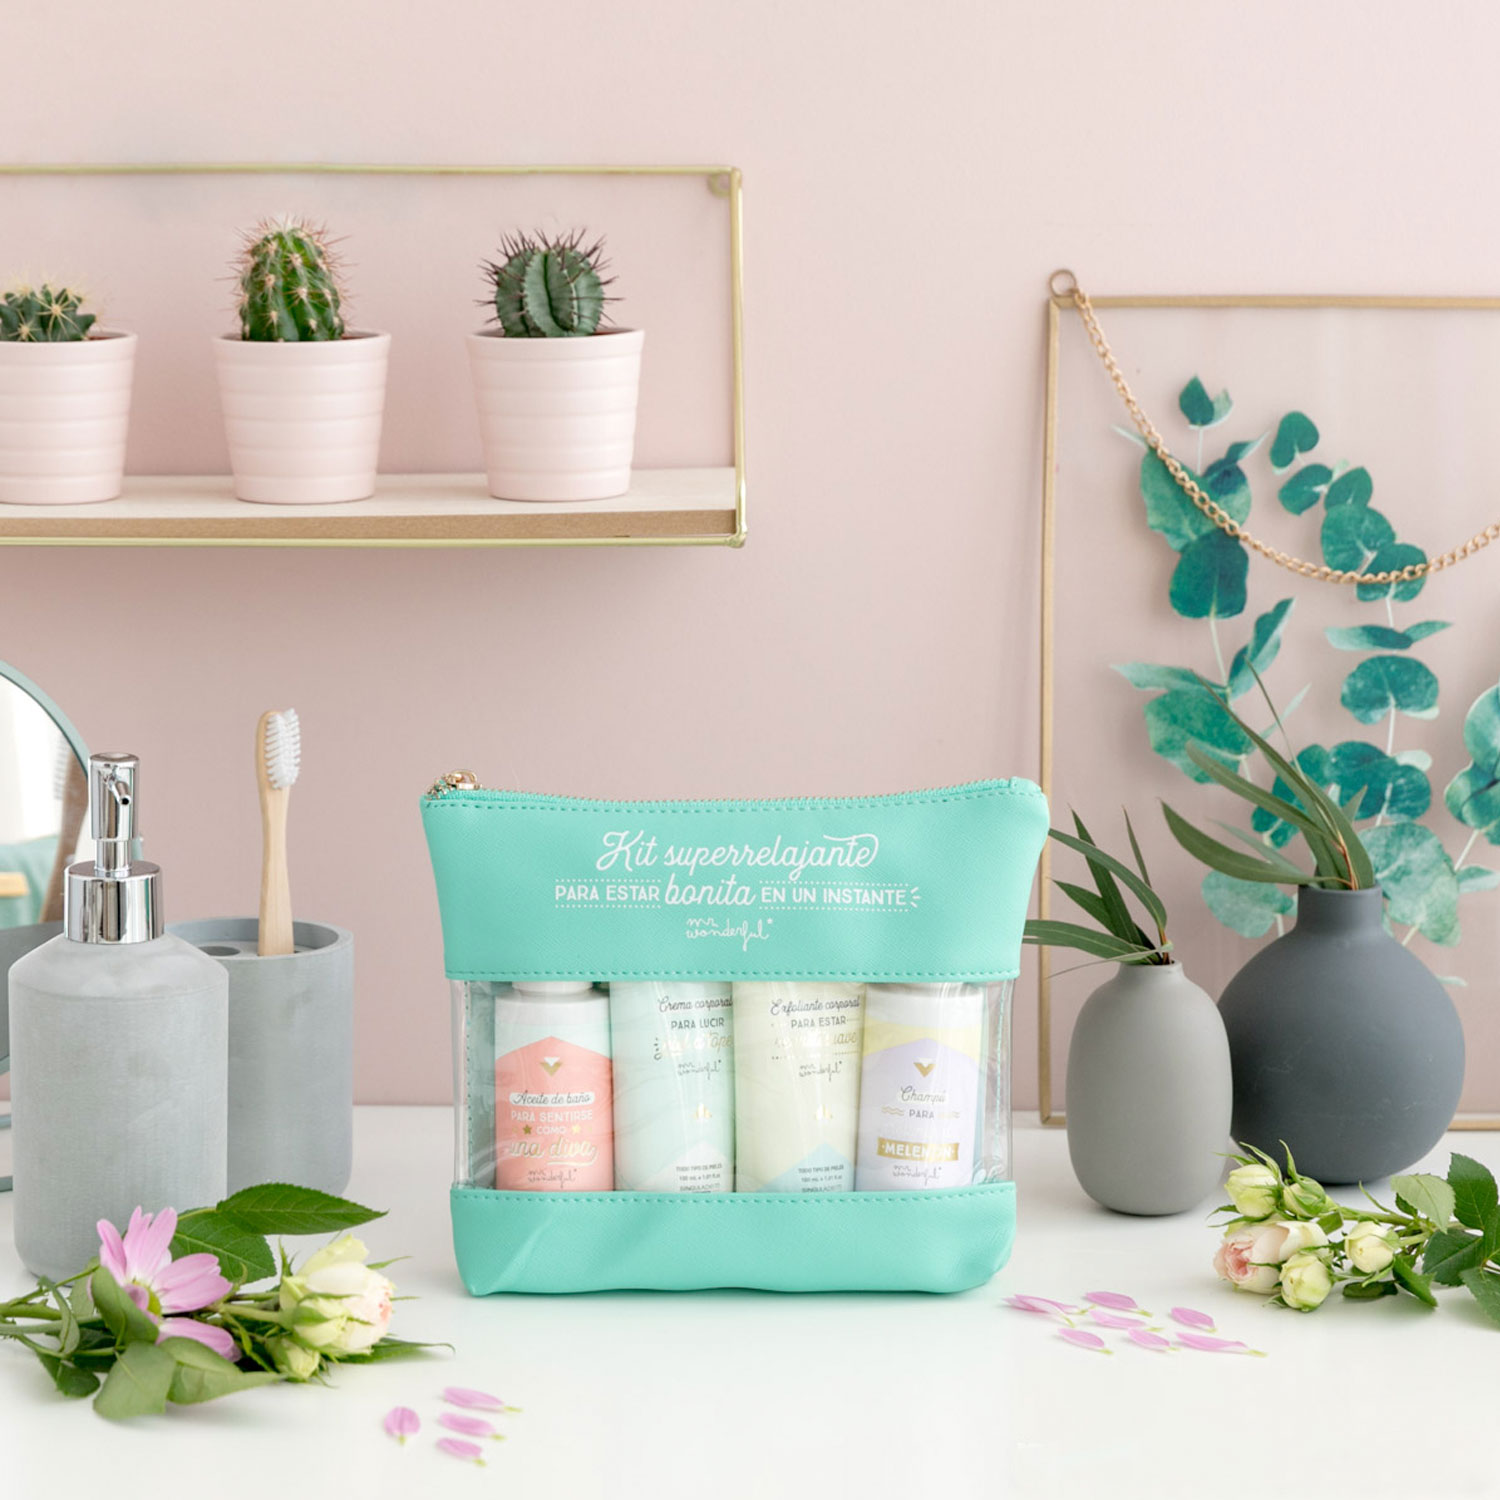 Super-relaxing kit to be pretty in an instant